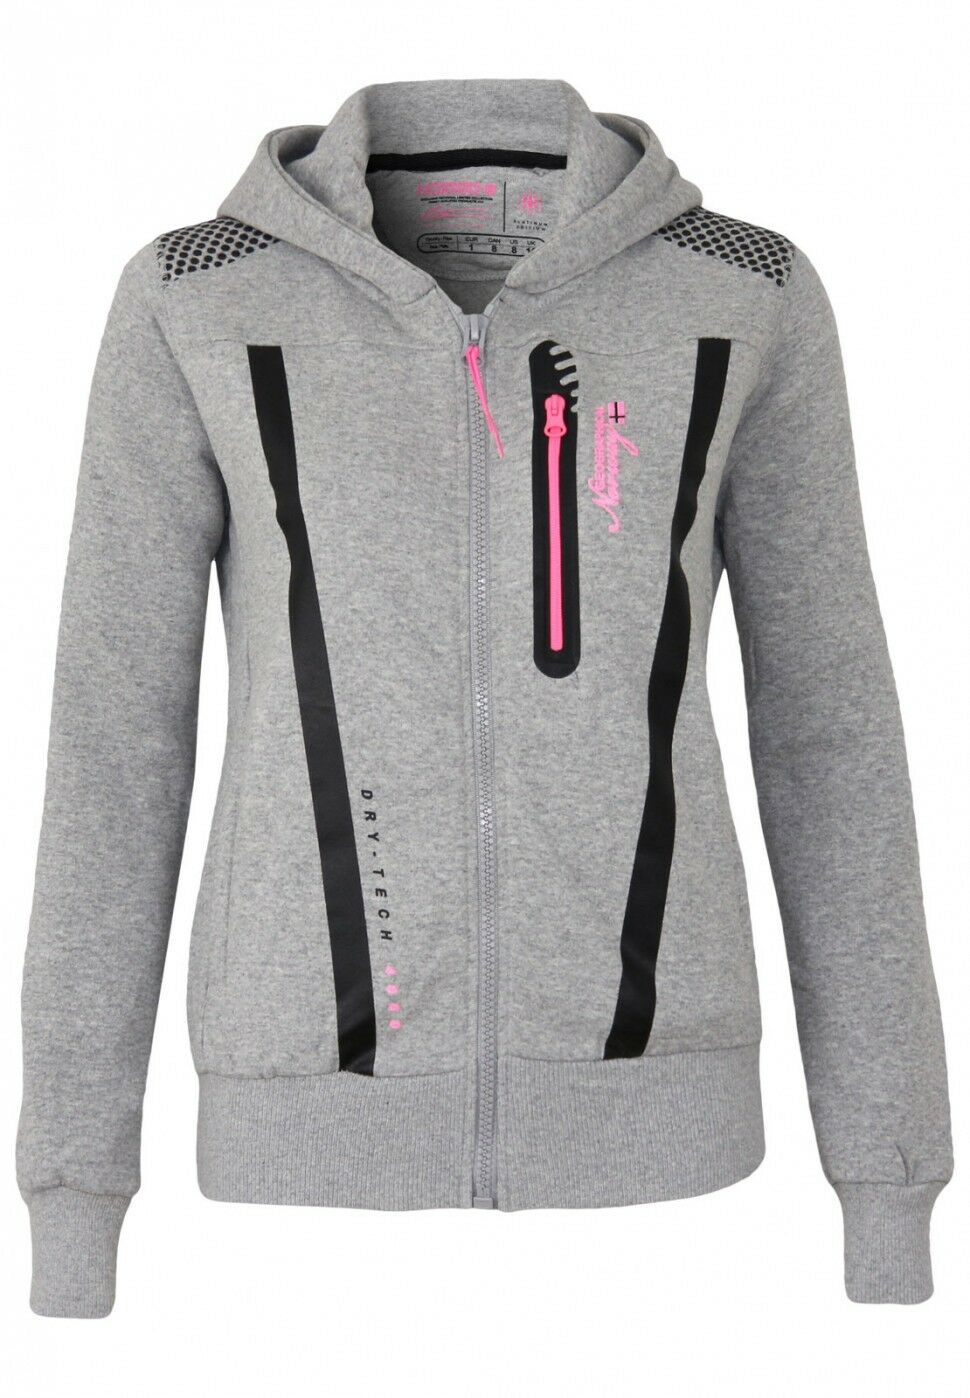 Geographical Norway Damen Sweatjacke Fitness Lady Kapuzepulli Strickjacke Sweat